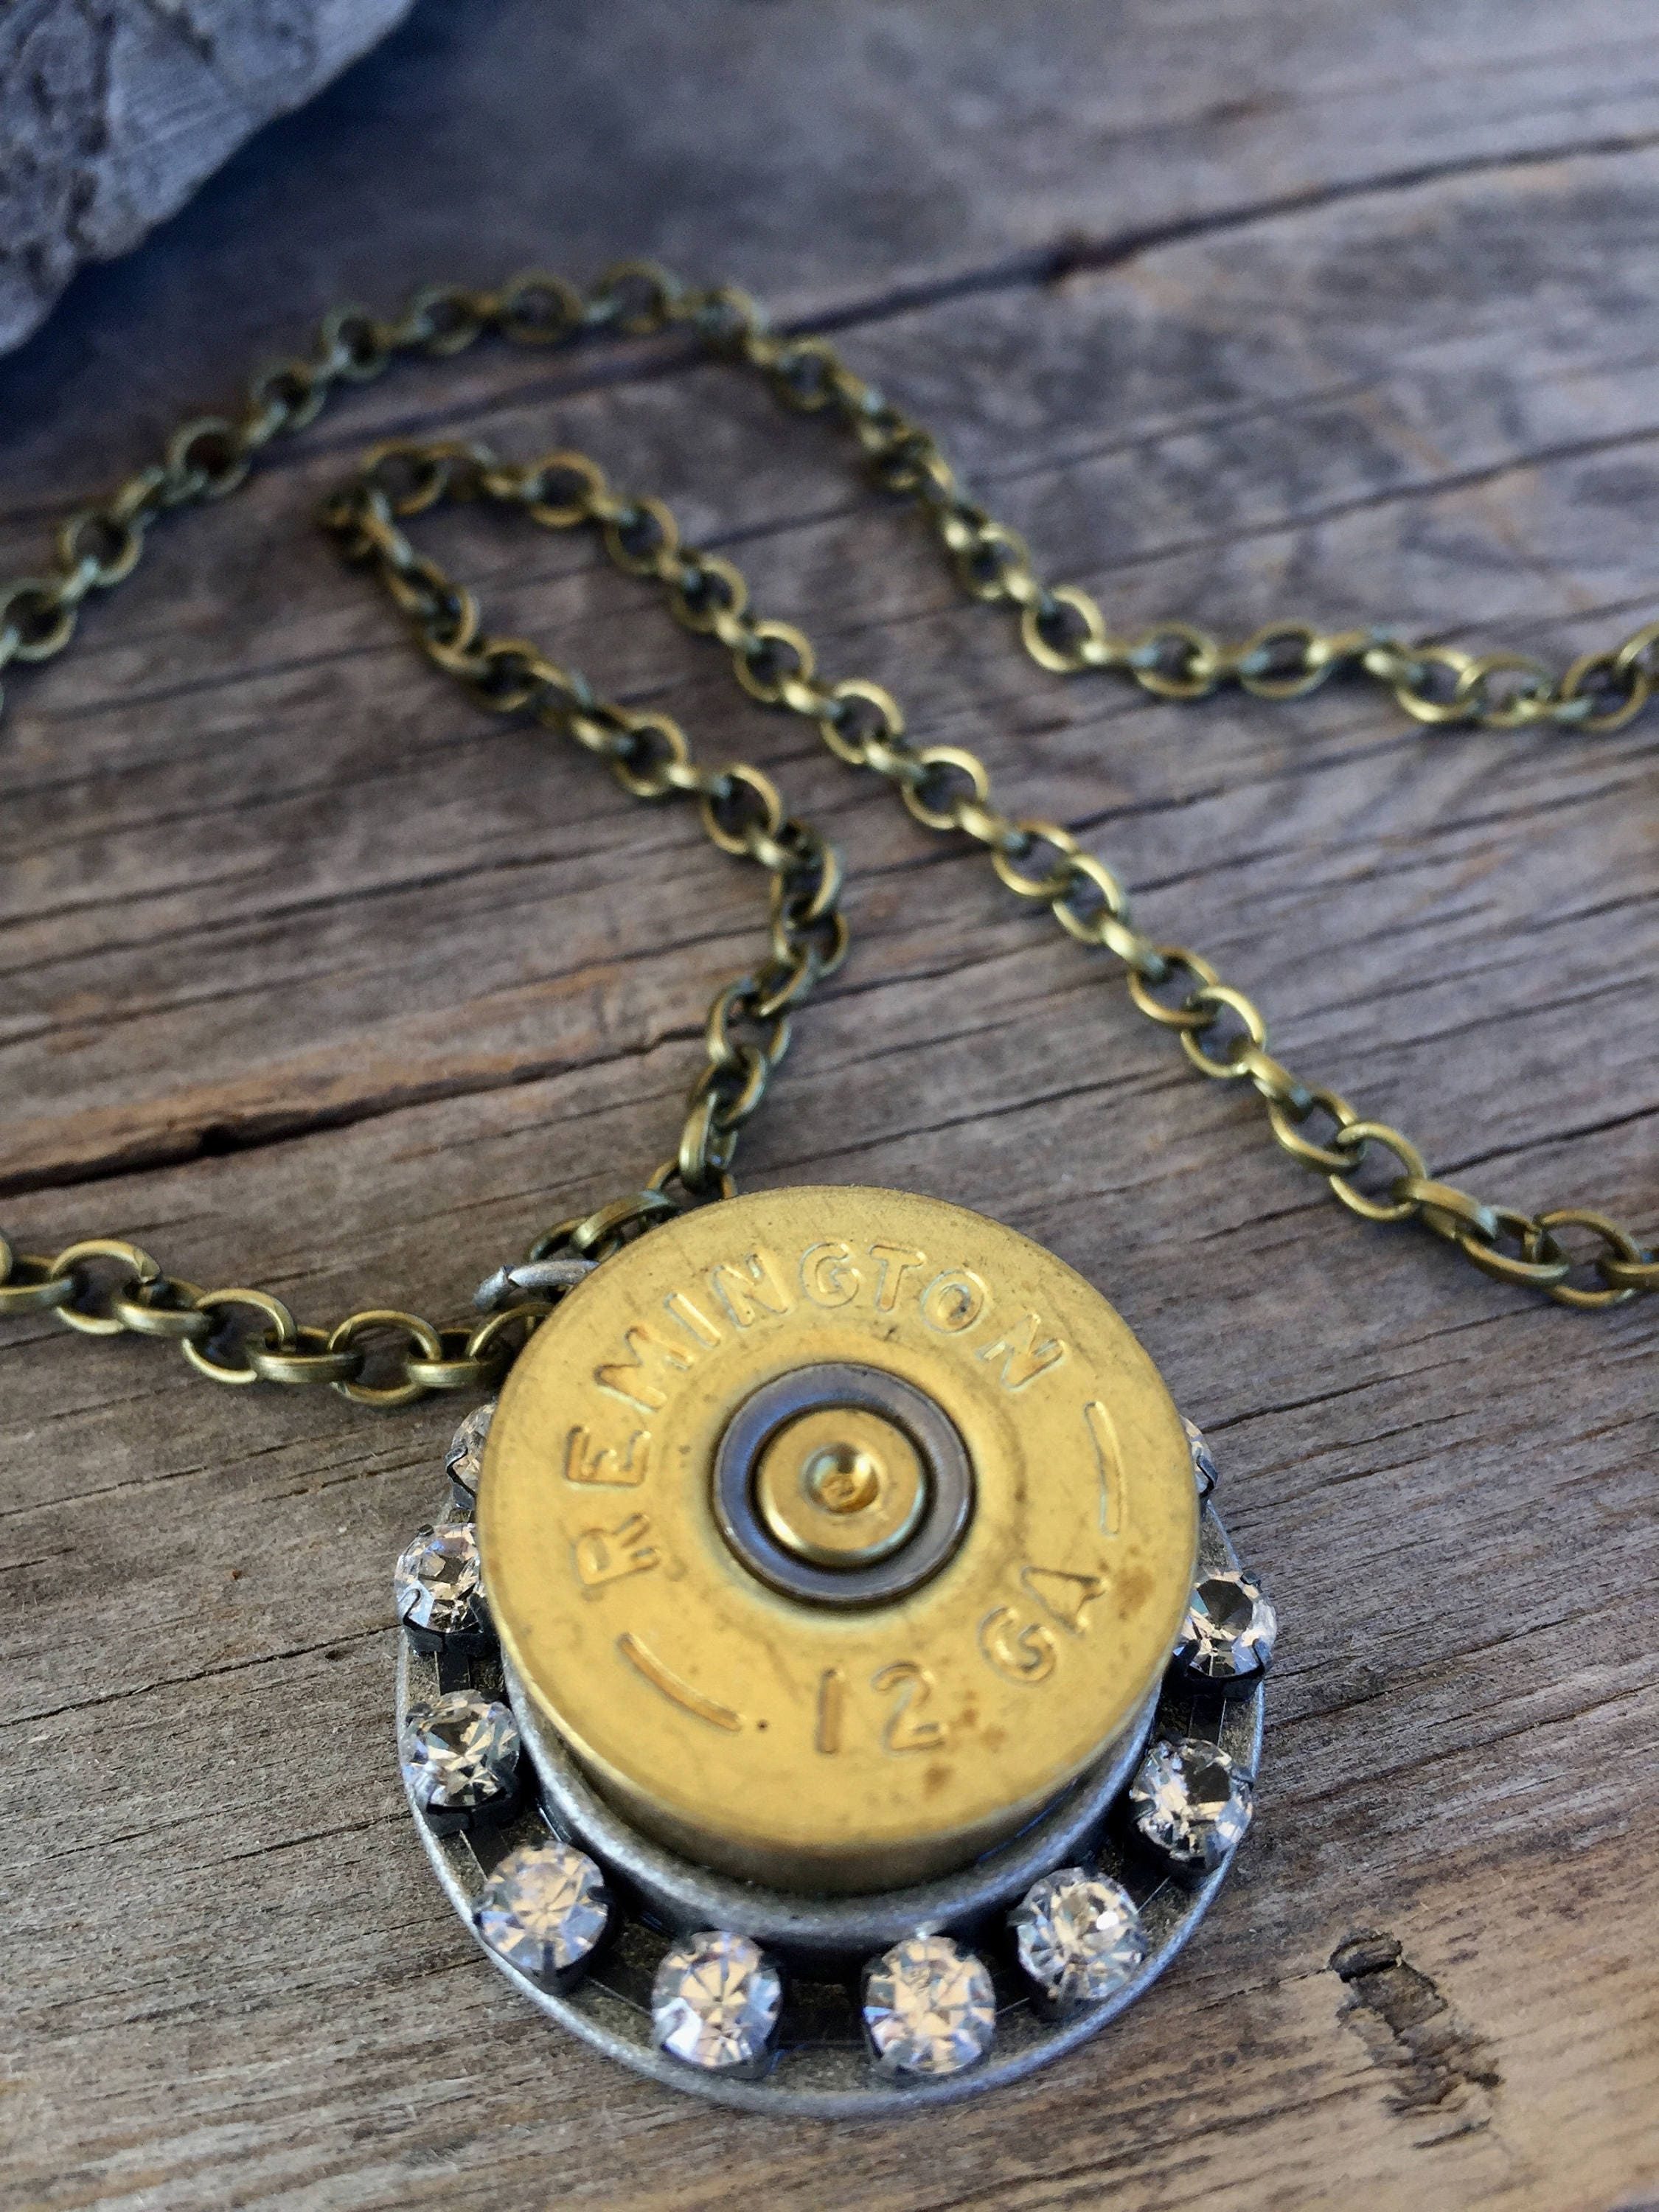 Bullet necklace country hunter girl jewelry gift western bling ...